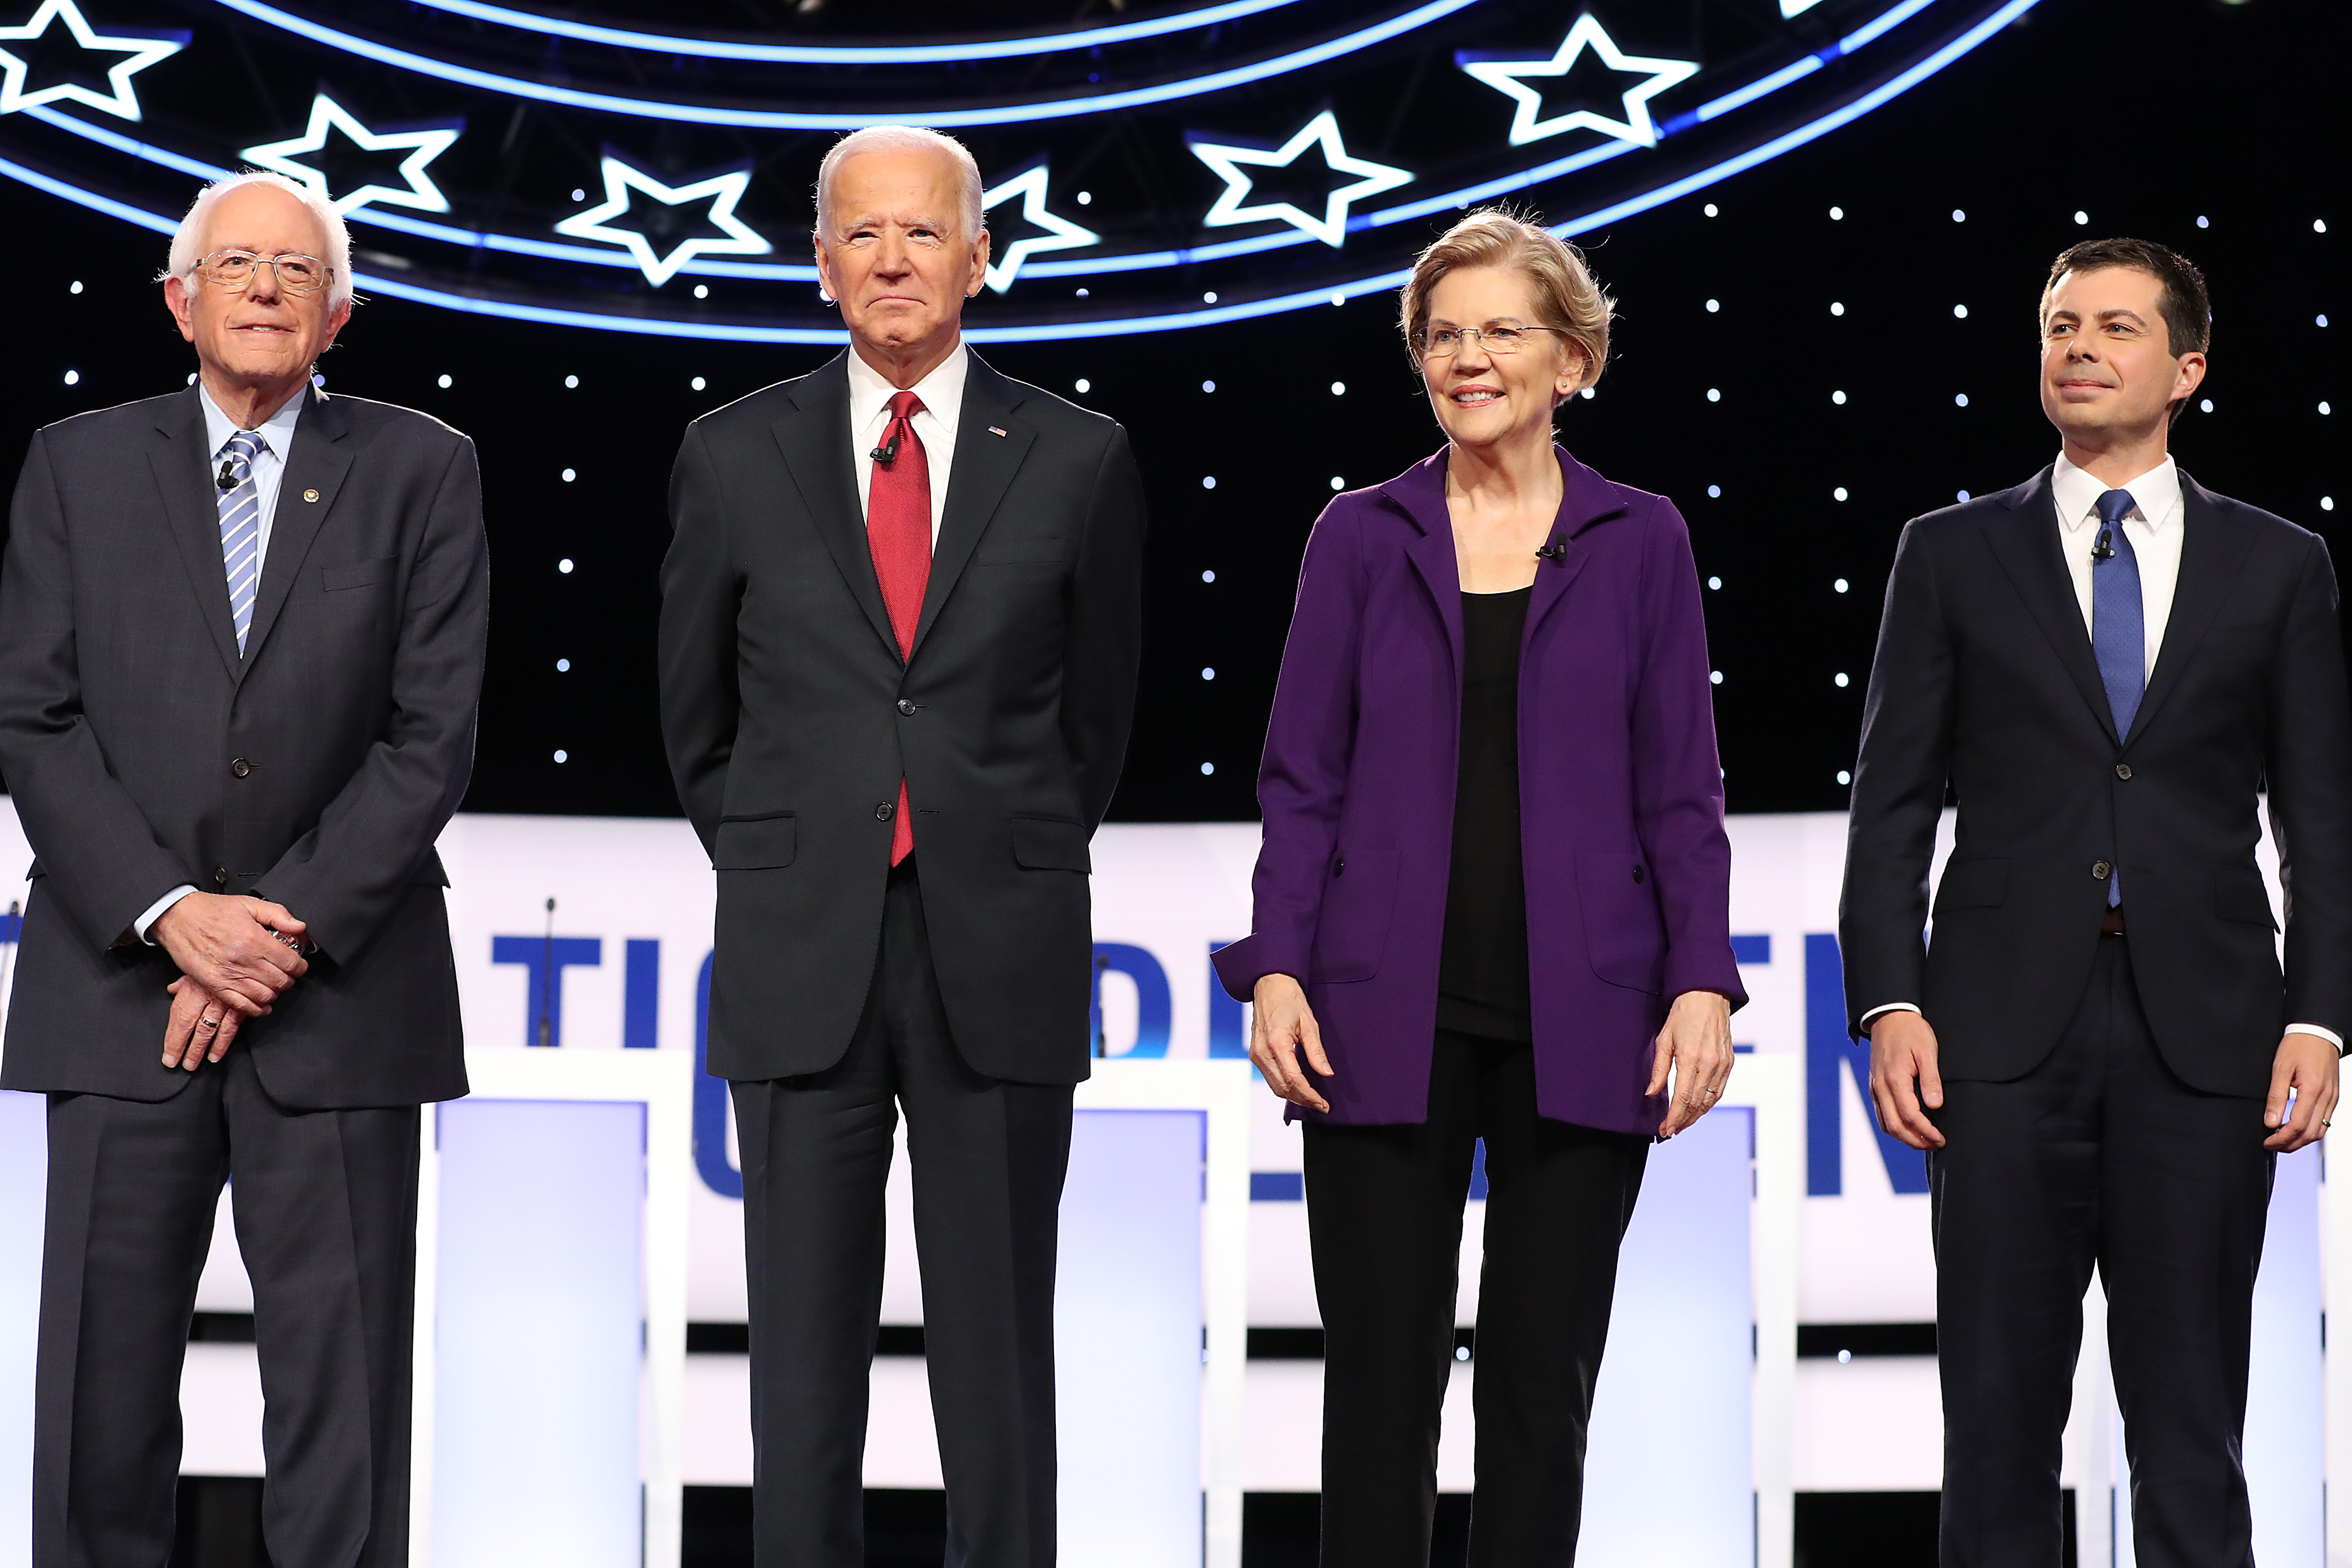 The fourth 2020 Democratic presidential debate, explained in under 25 minutes